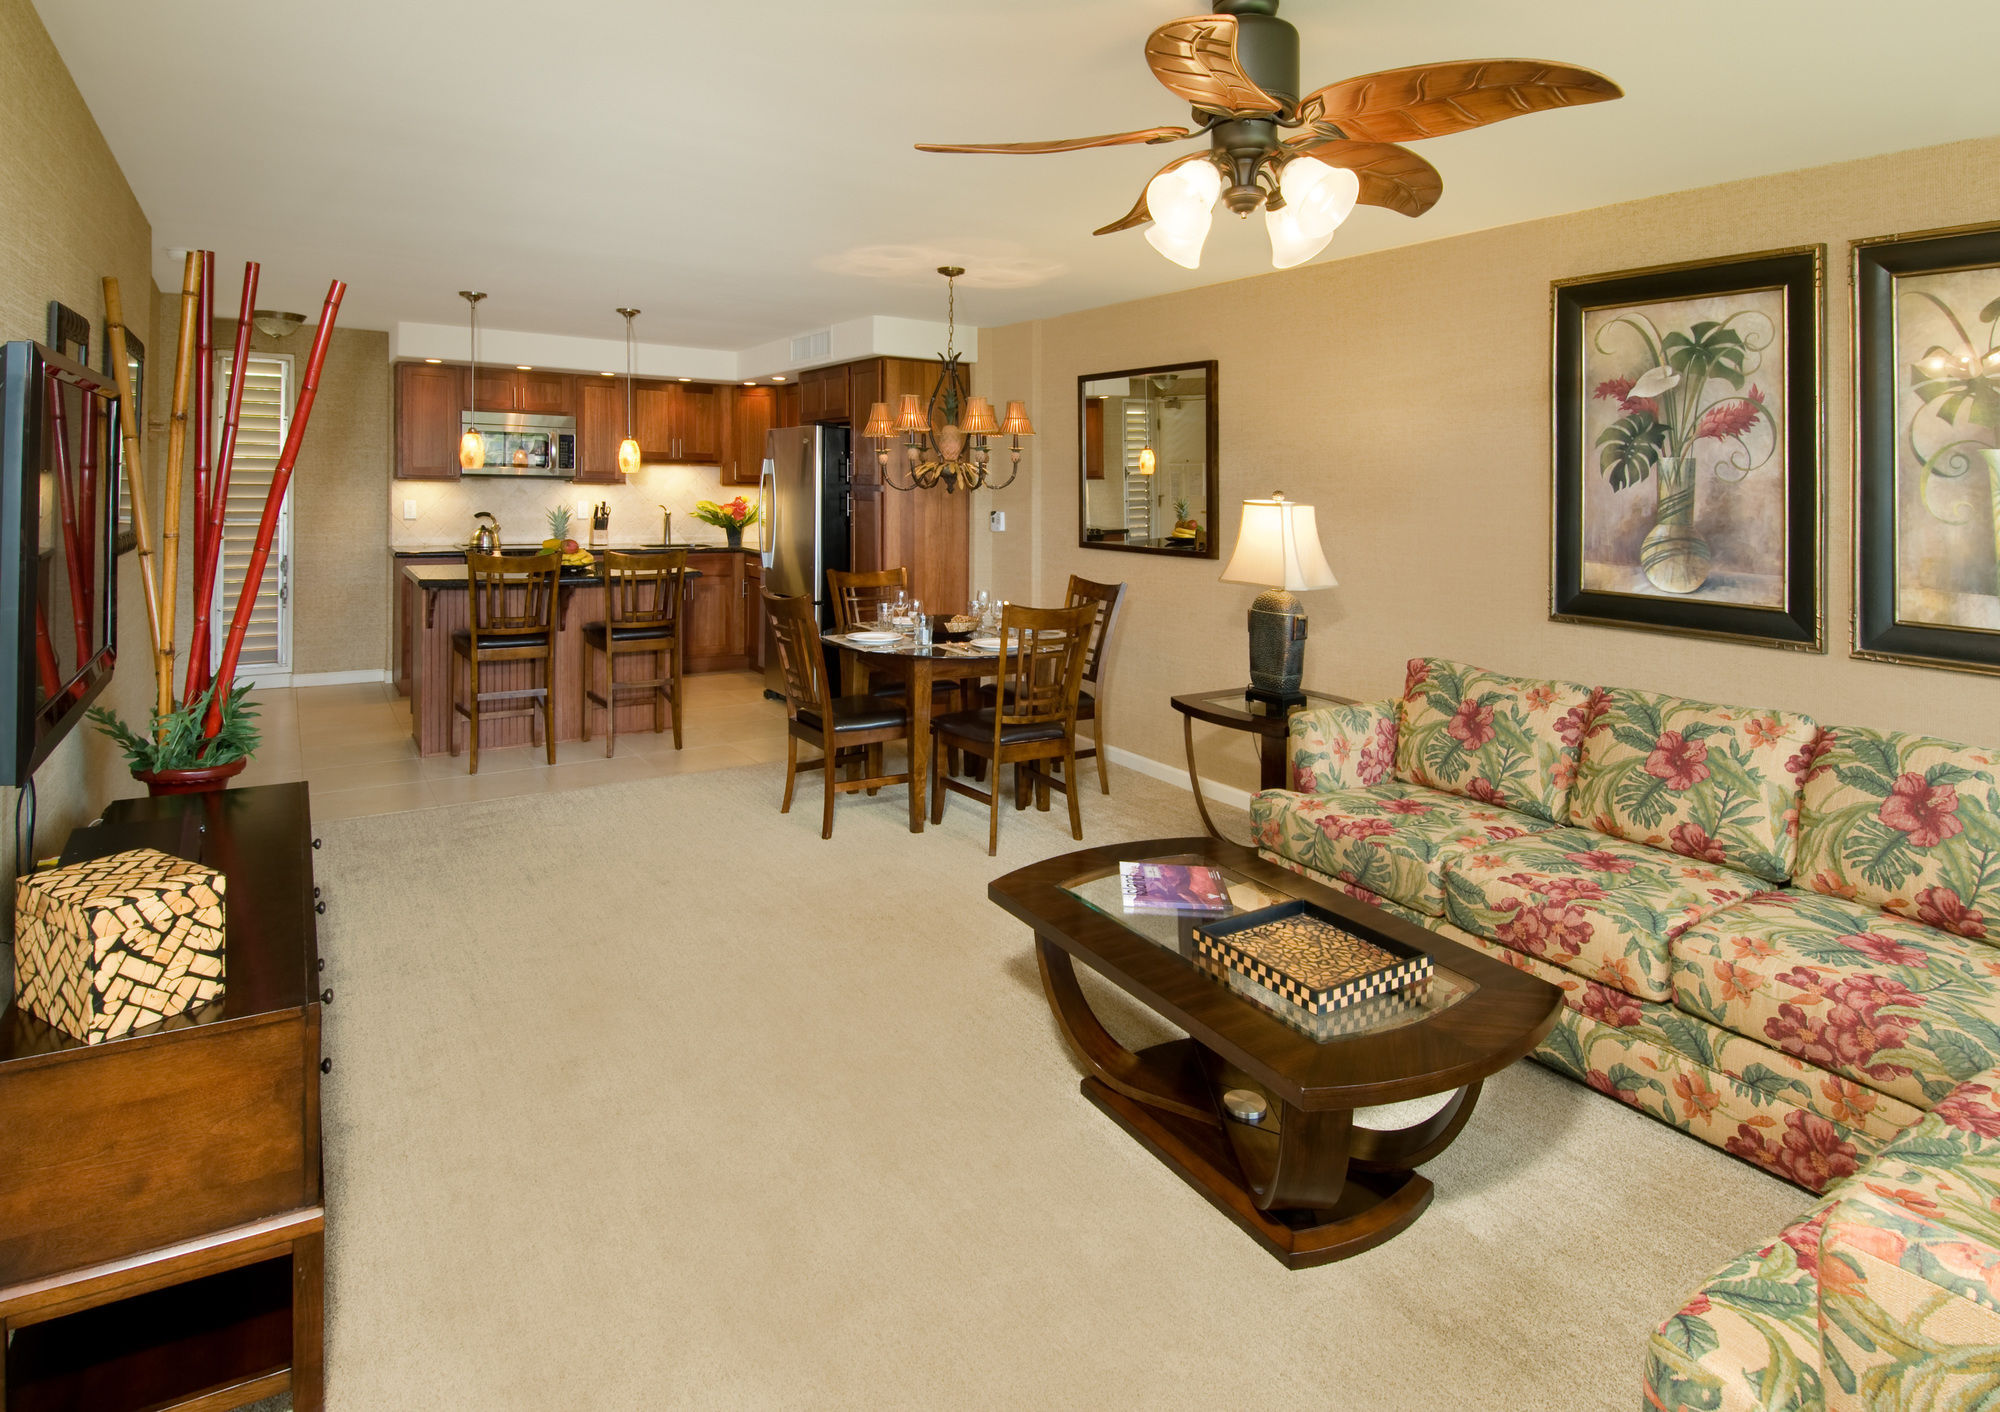 maui hotels with kitchens 4 piece stainless steel kitchen appliance package lahaina hotel coupons for hawaii